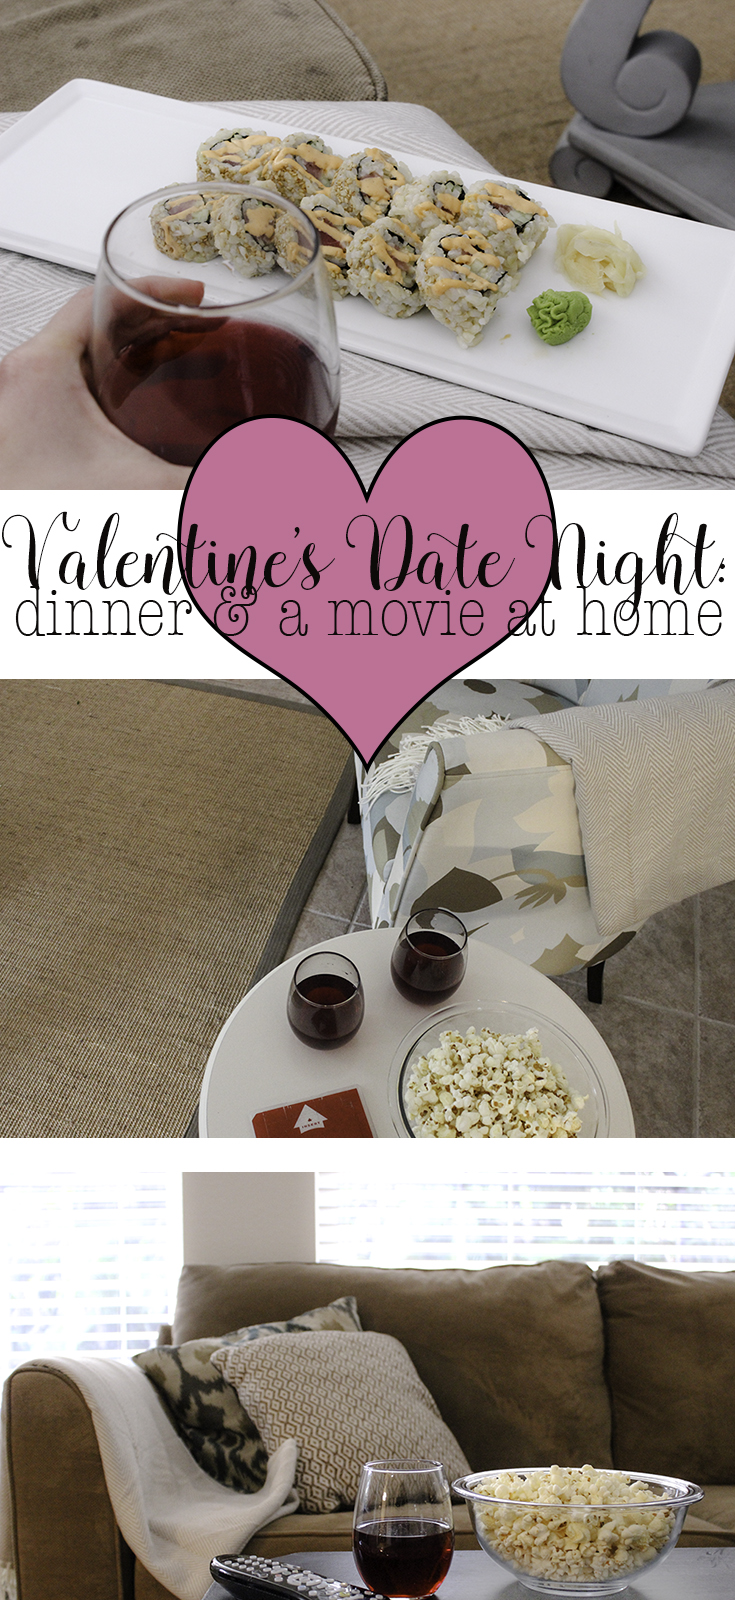 Celebrate Valentine's Day at home with a Valentine's date night. This is an easy Valentine's Date night idea to enjoy dinner and a movie at home